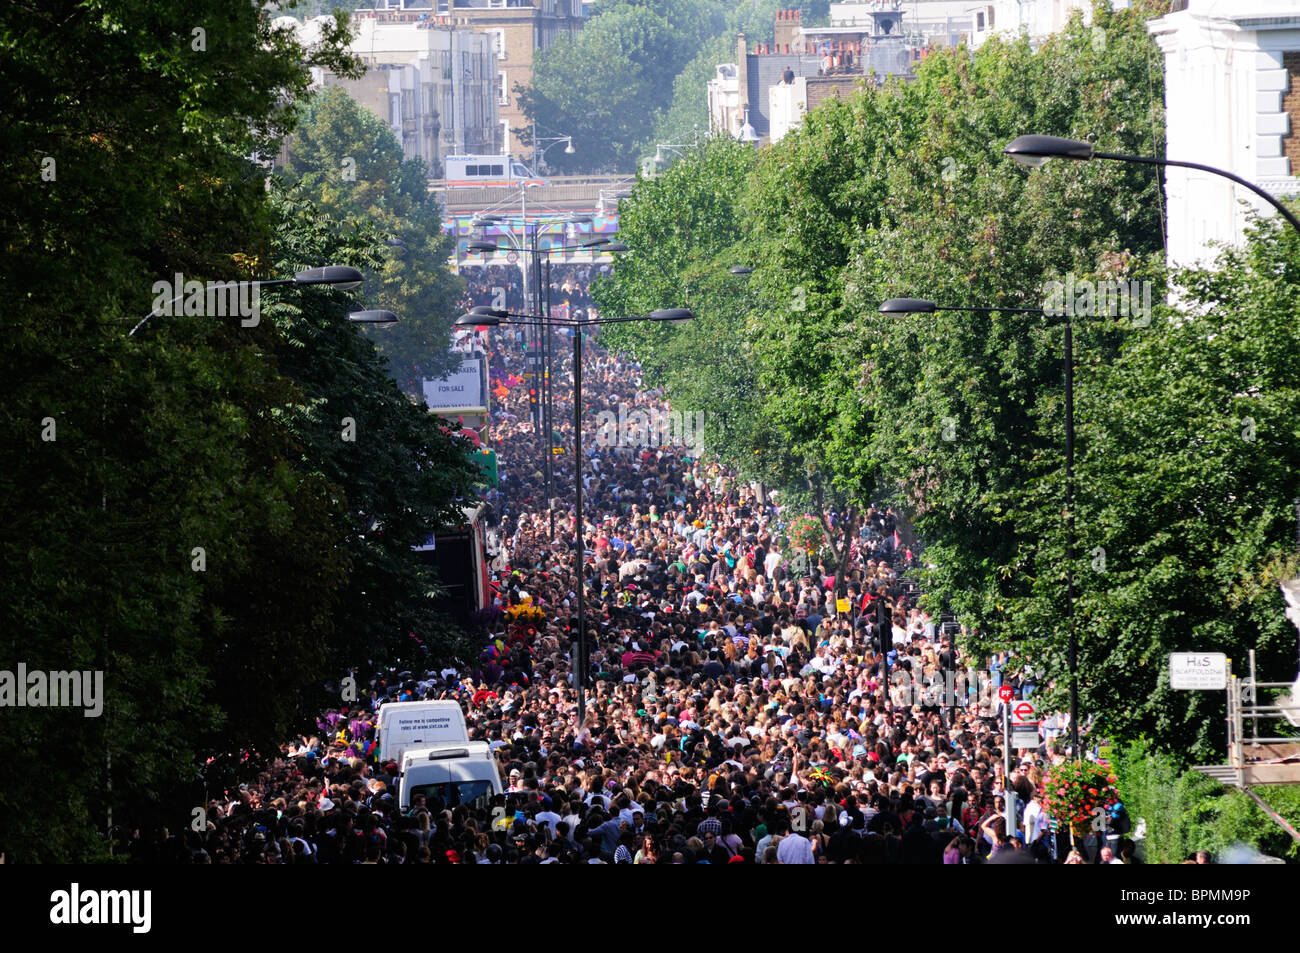 Crowds of Notting Hill Carnival goers in Ladbroke Grove, London, England, UK - Stock Image